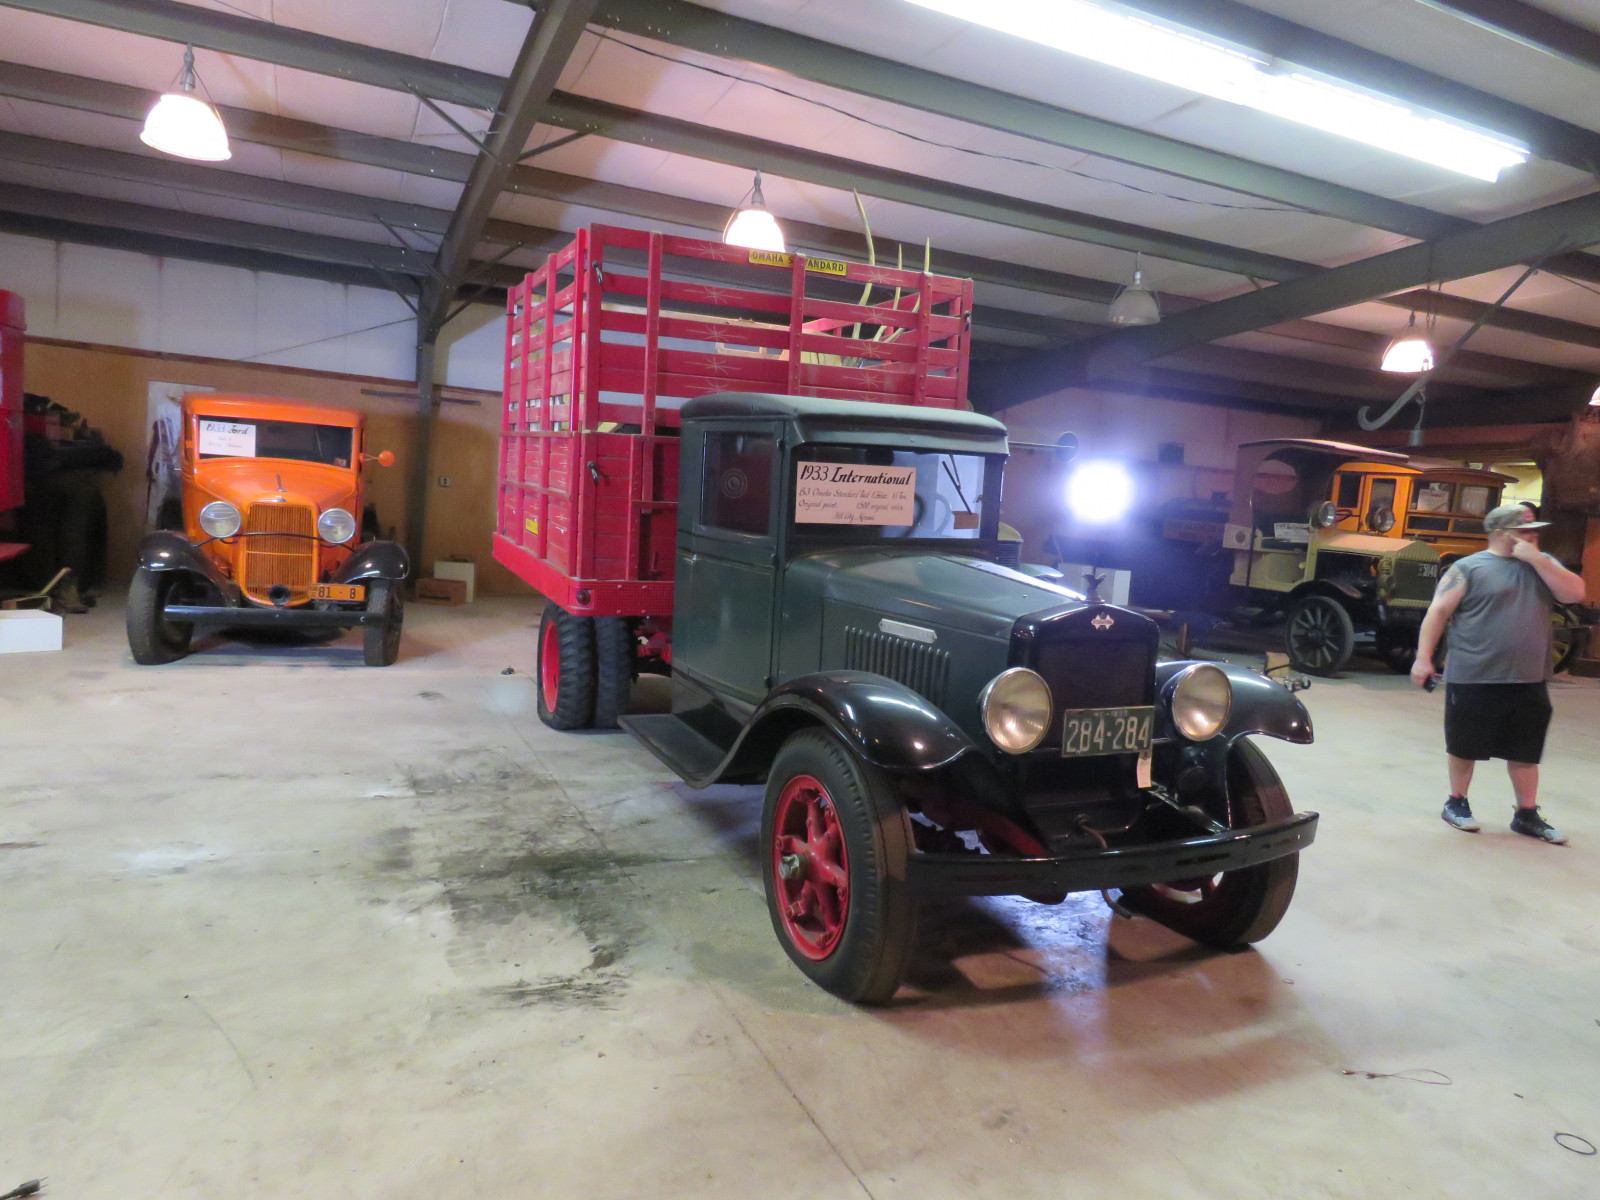 1933 International B-3 1 1/2 Ton Cattle Truck - Image 3